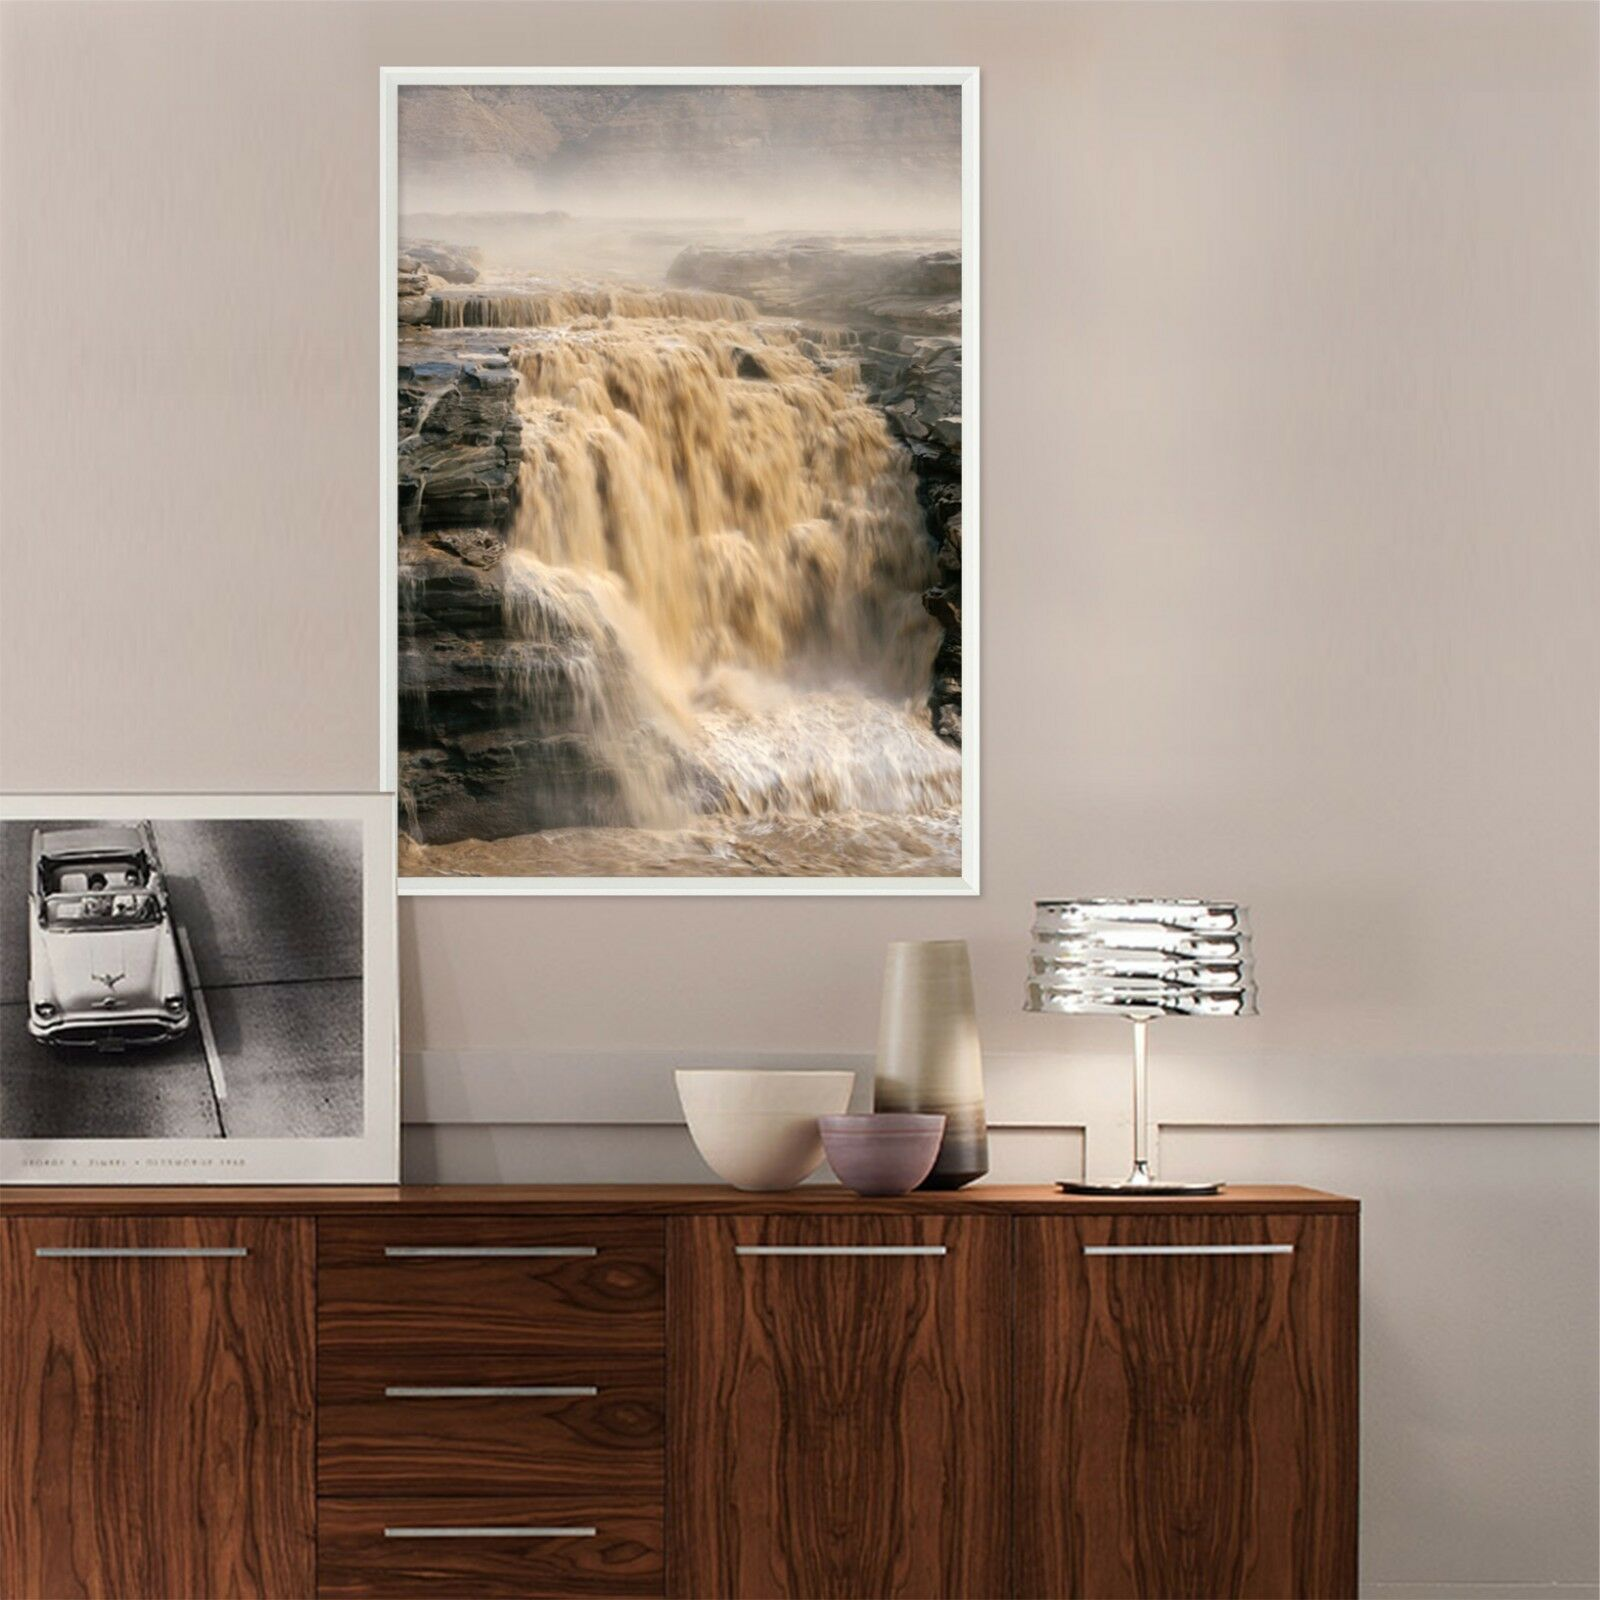 3D jaune River Waterfall 511 Framed Poster Home Decor Print Painting Art AJ AU